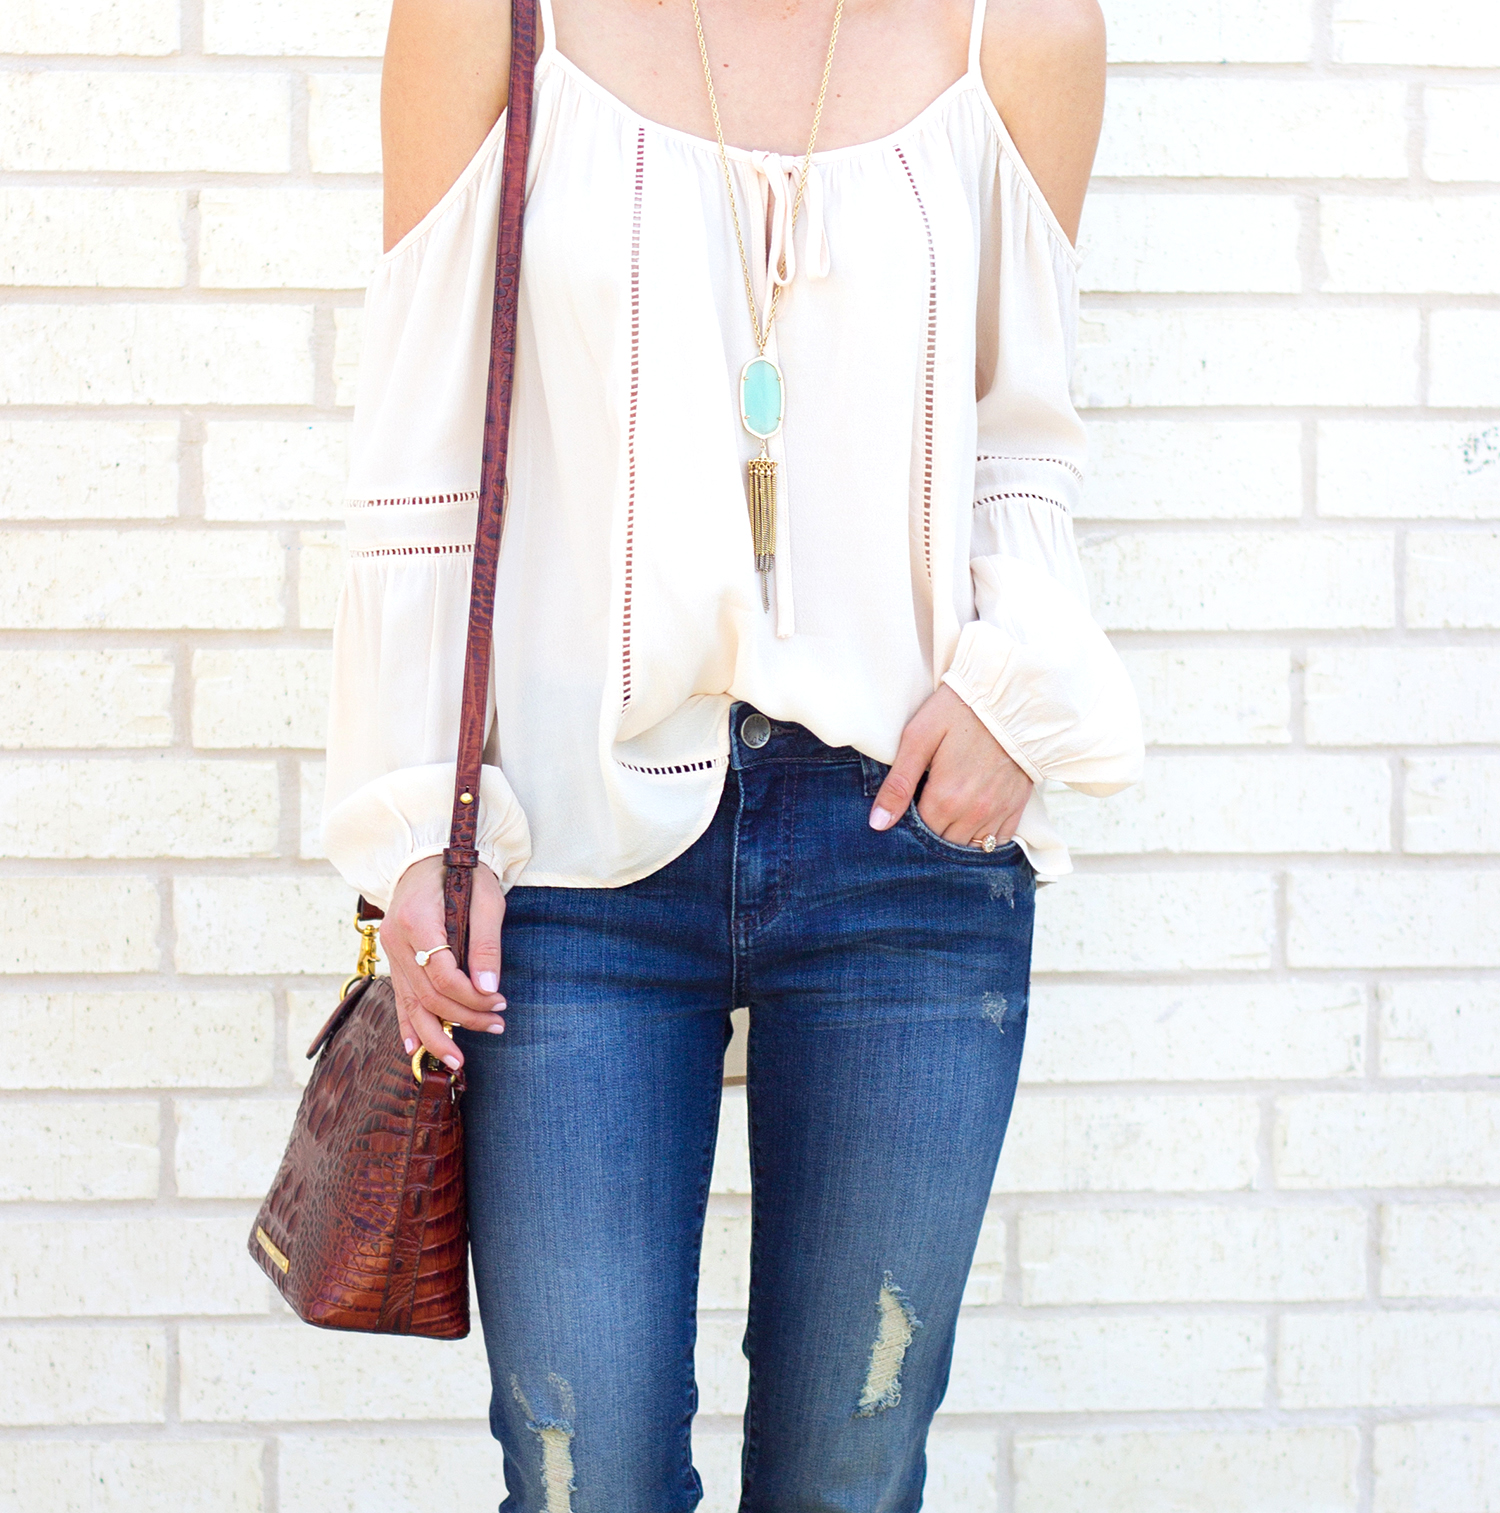 1-livvyland-blog-olivia-watson-austin-texas-fashion-blogger-kut-against-the-kloth-skinny-jeans-cream-nude-cold-shoulder-off-top-spring-nordstrom-stecy-heels-steve-madden-7